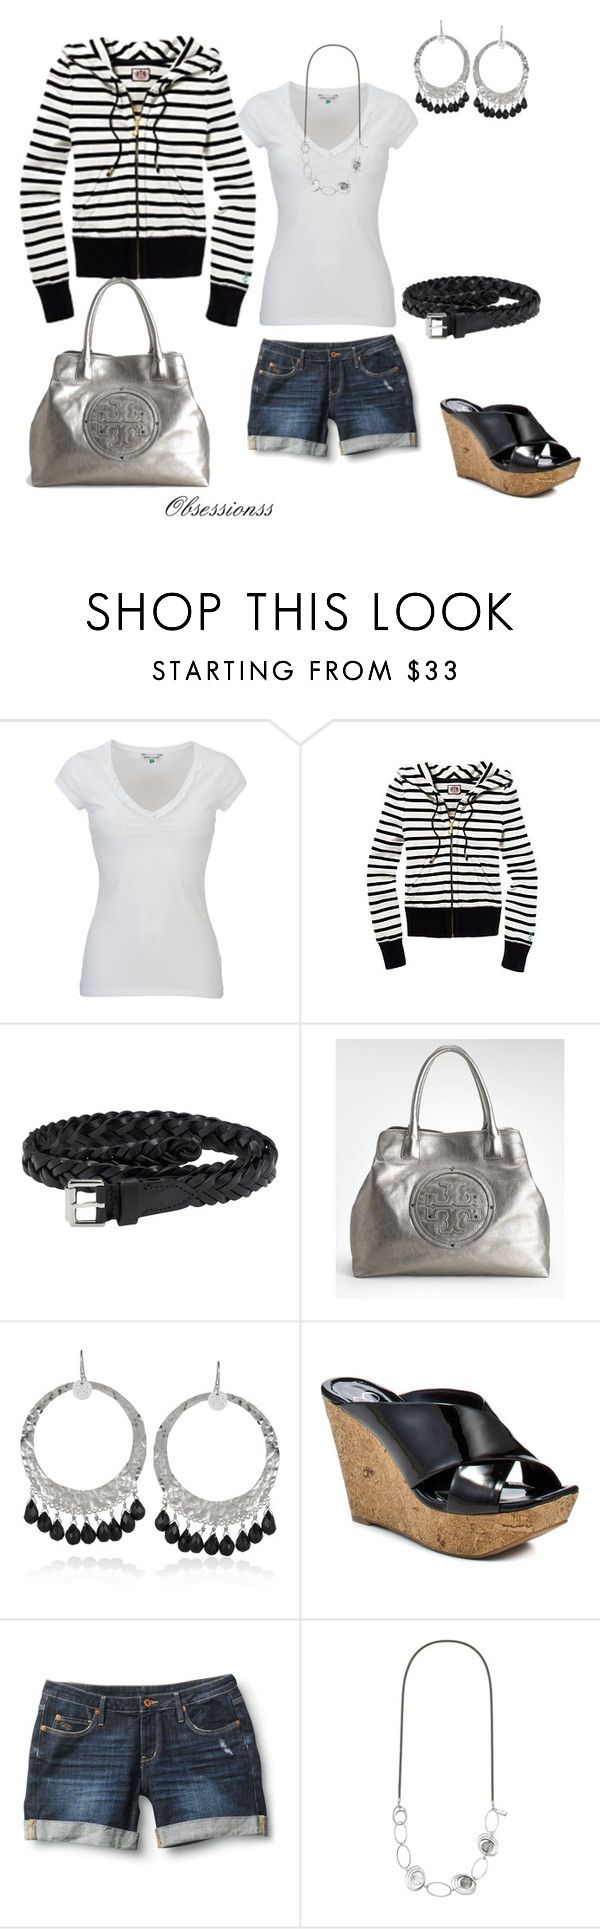 """Black and White Stripes"" by obsessionss ❤ liked on Polyvore featuring White Stuff, Juicy Couture, Mulberry, Tory Burch, Nicole Fendel, Jessica Simpson, Quiksilver, Swarovski Crystallized, metallic tote and long chain necklace"